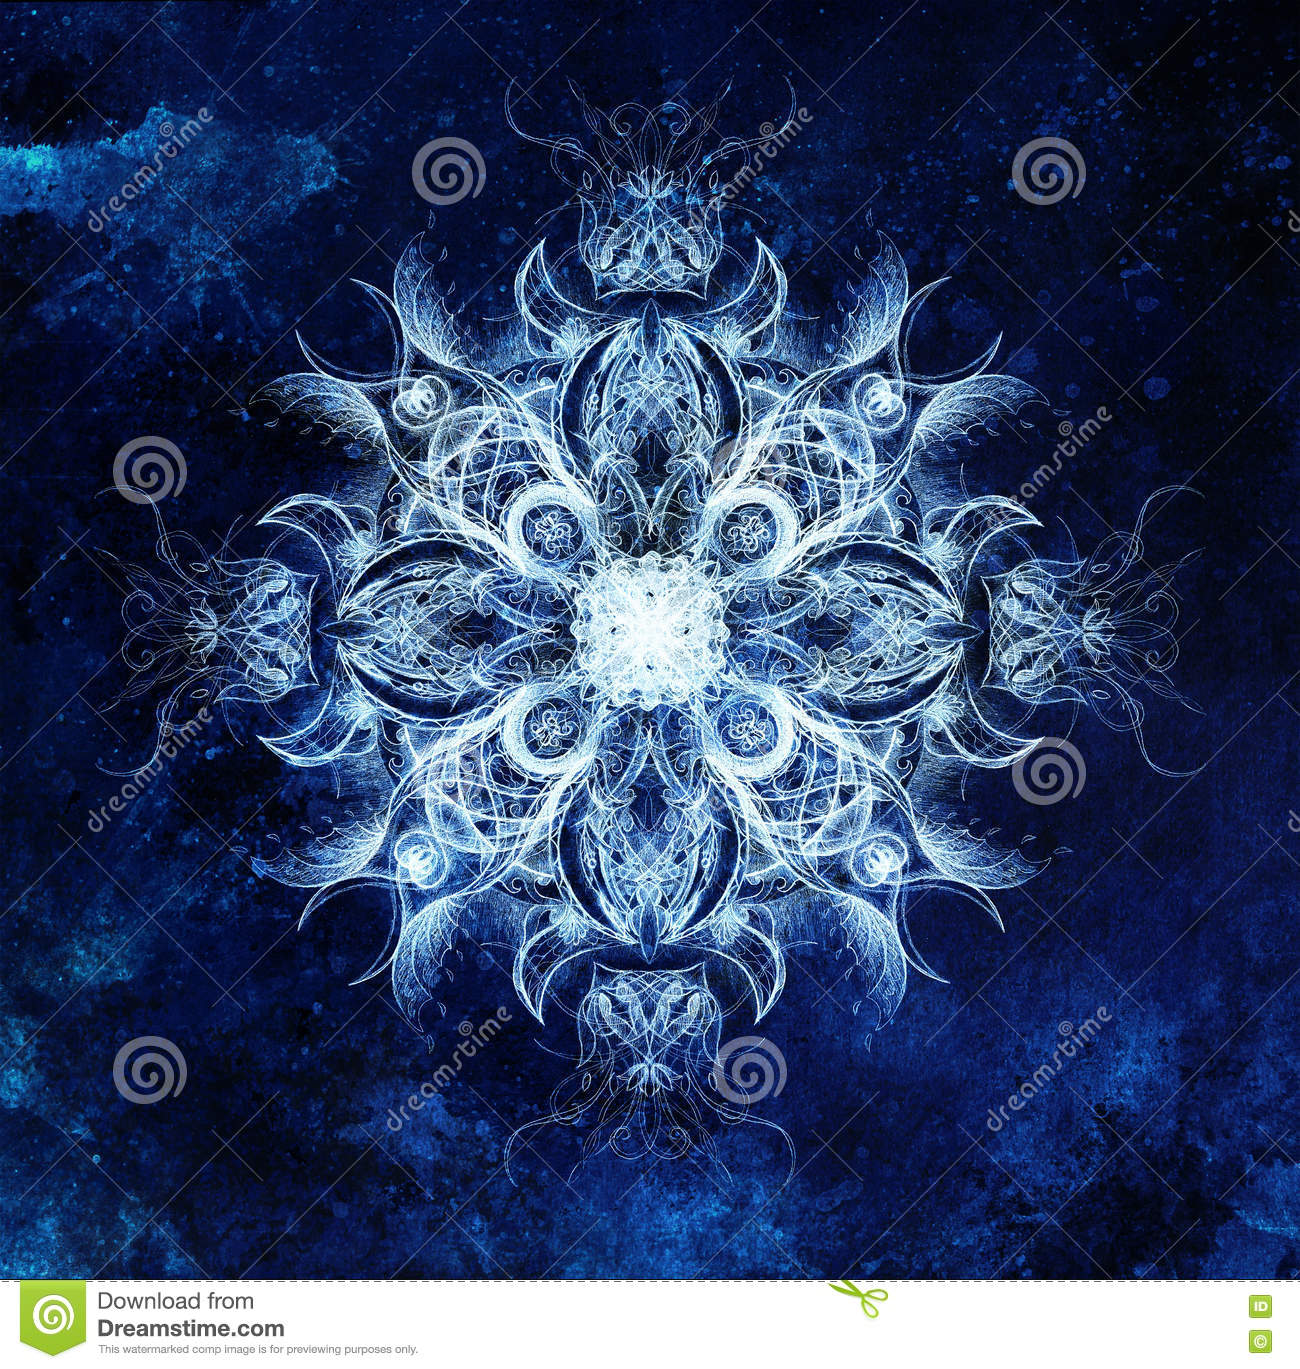 Download Ornamental Mandala Original Hand Draw And Computer Collage Blue Color Structure Winter